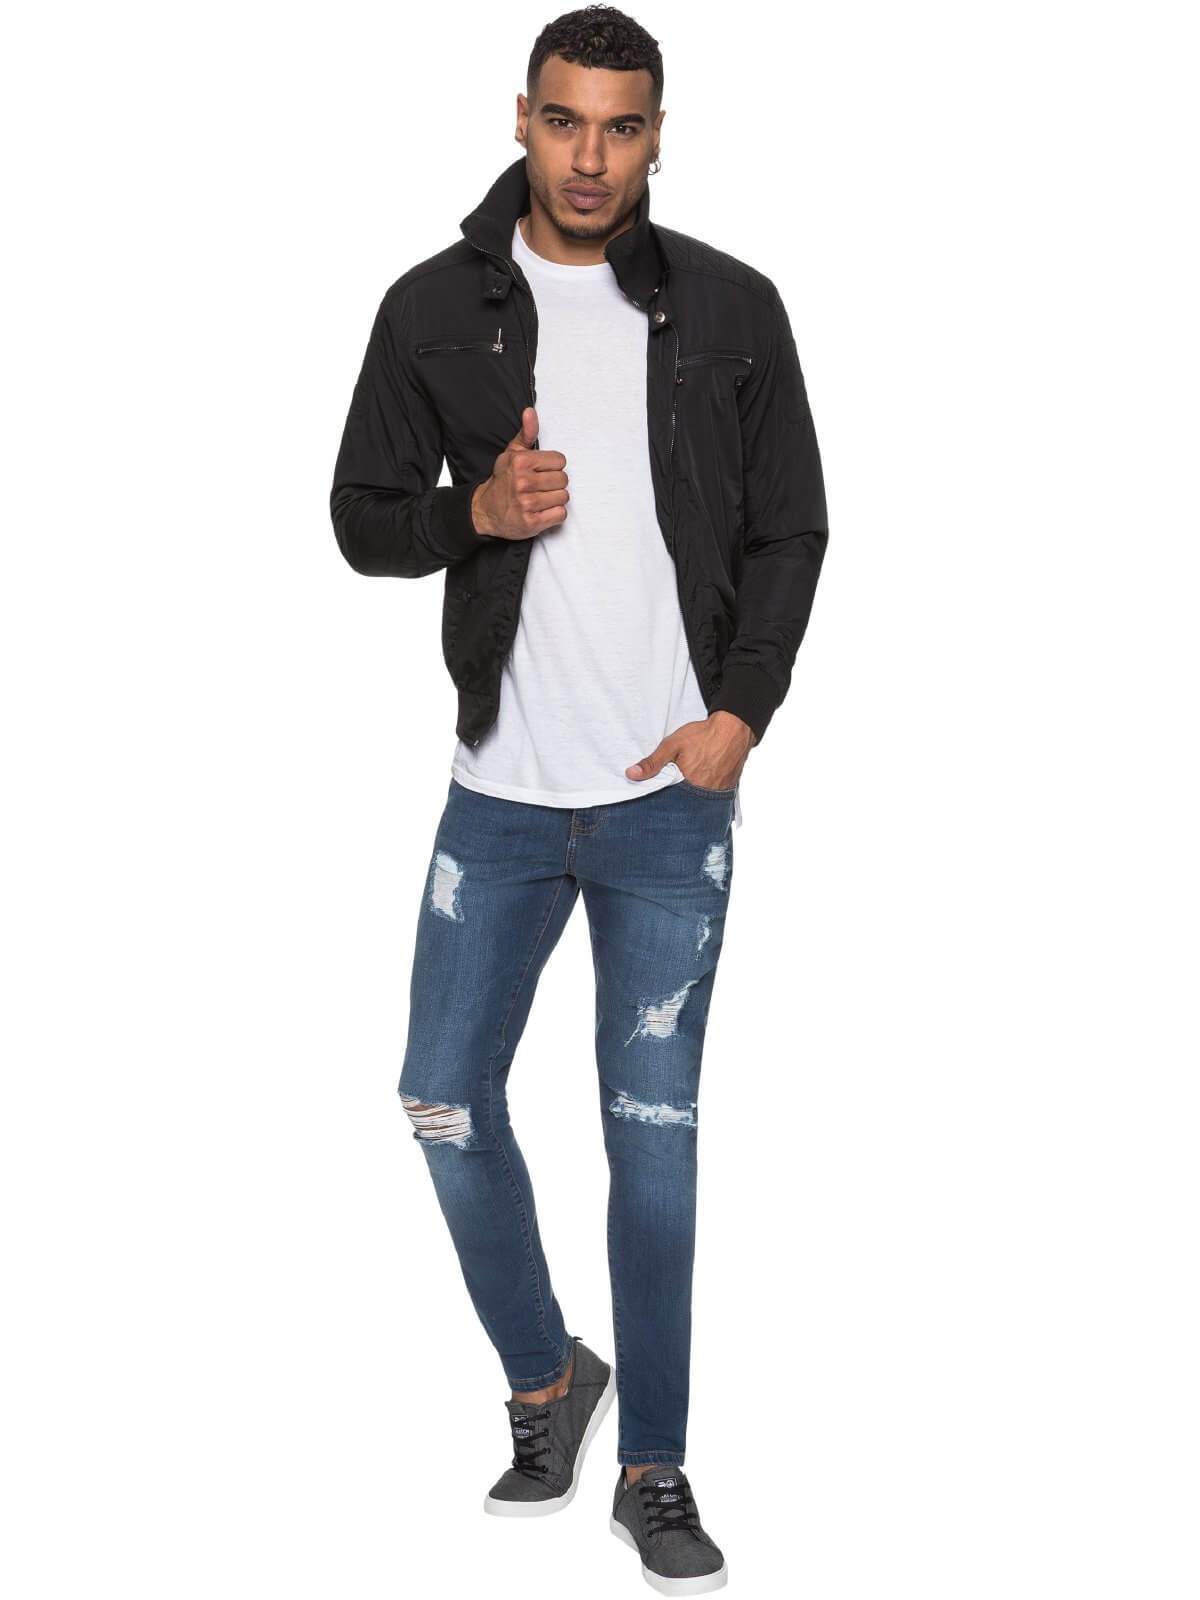 ETO | Men's Designer Black Biker Style Jacket